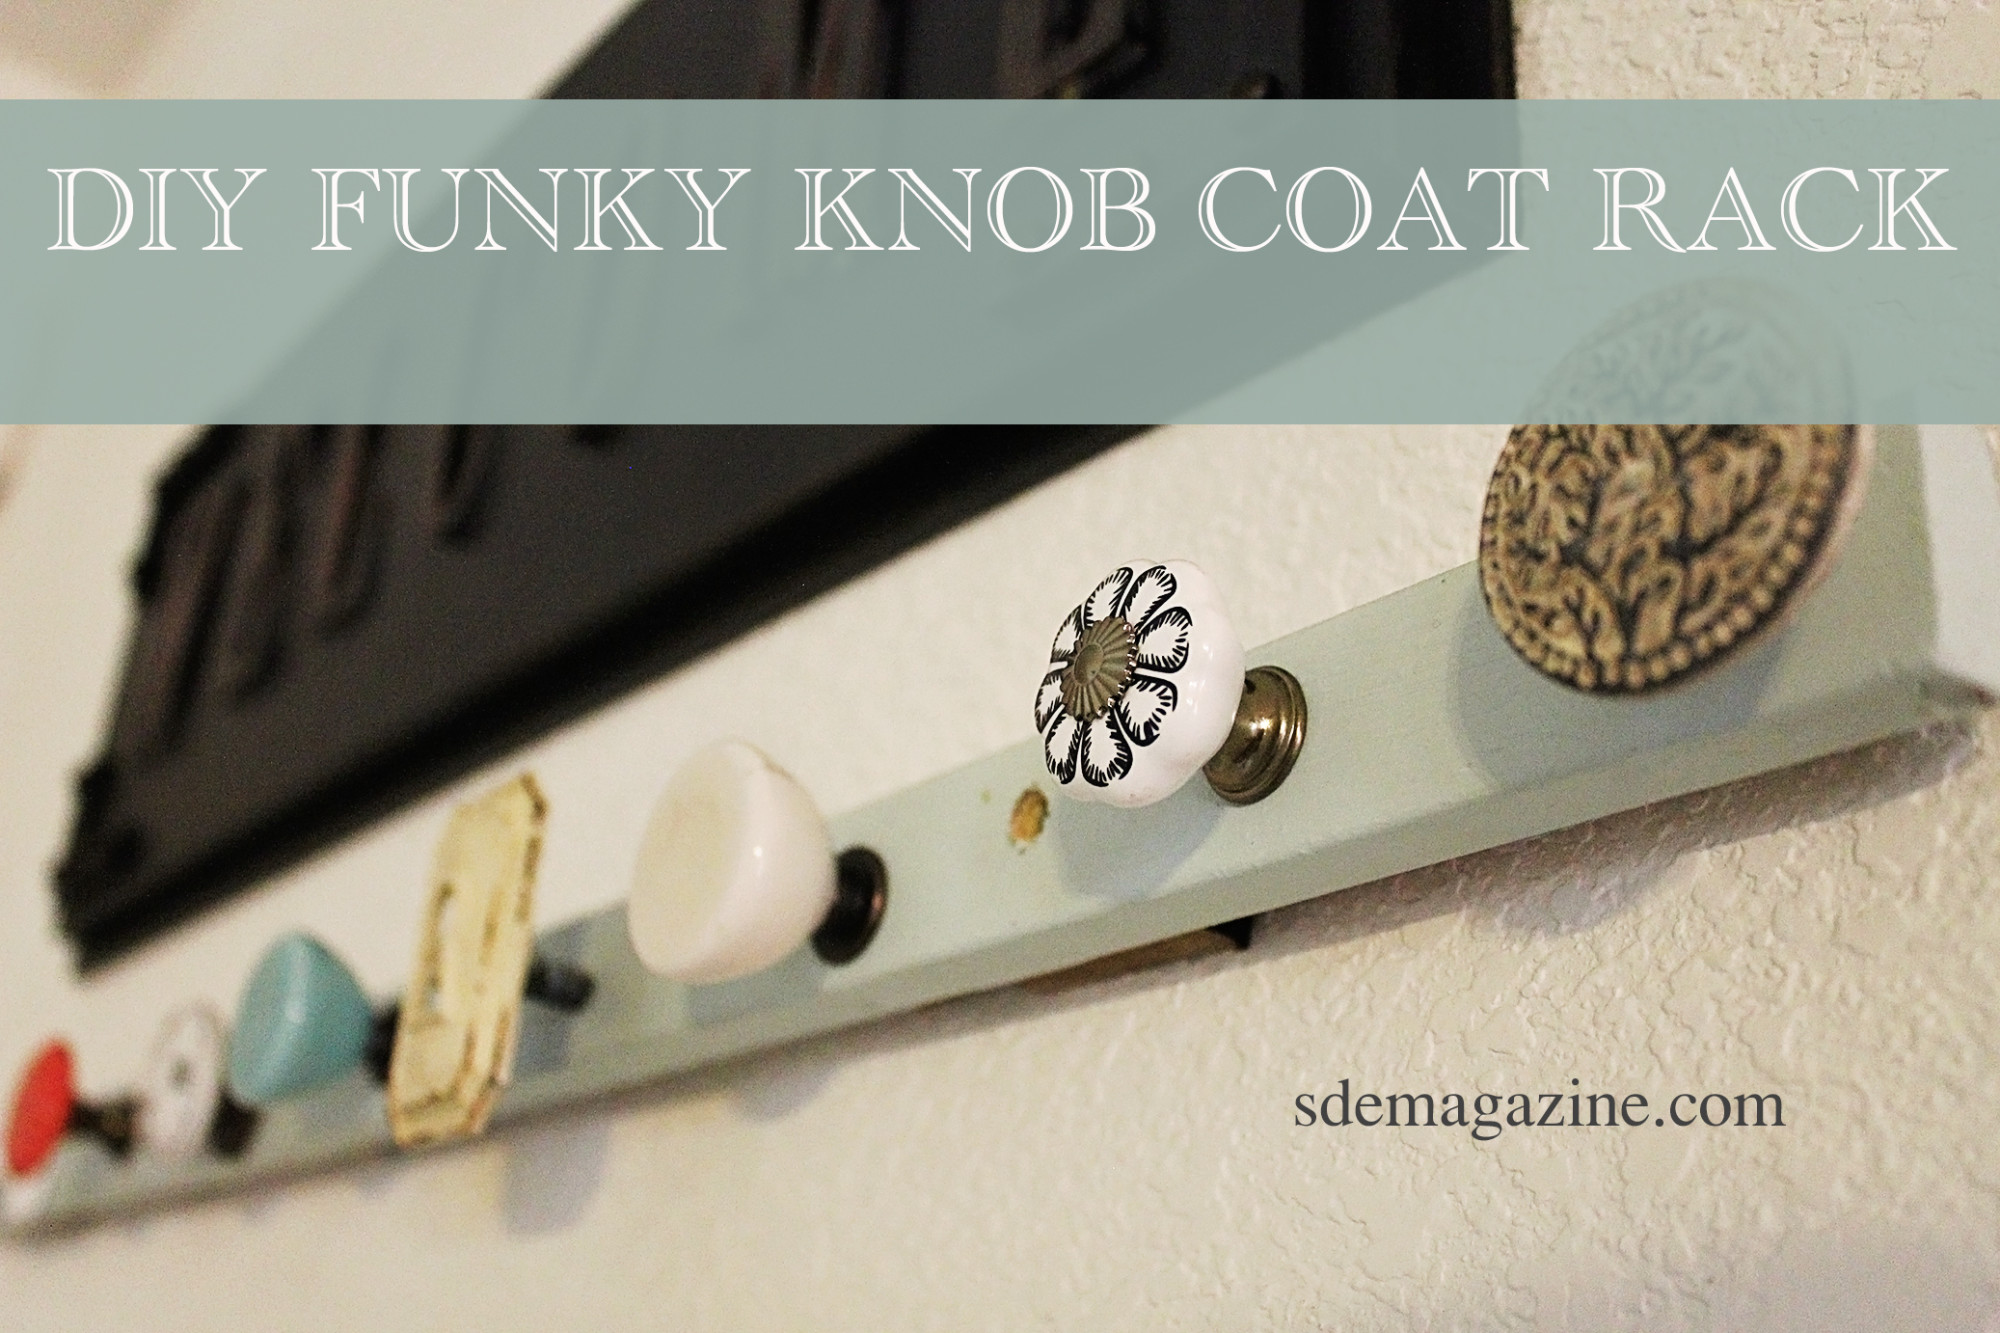 DIY Funky Knob Coat Rack